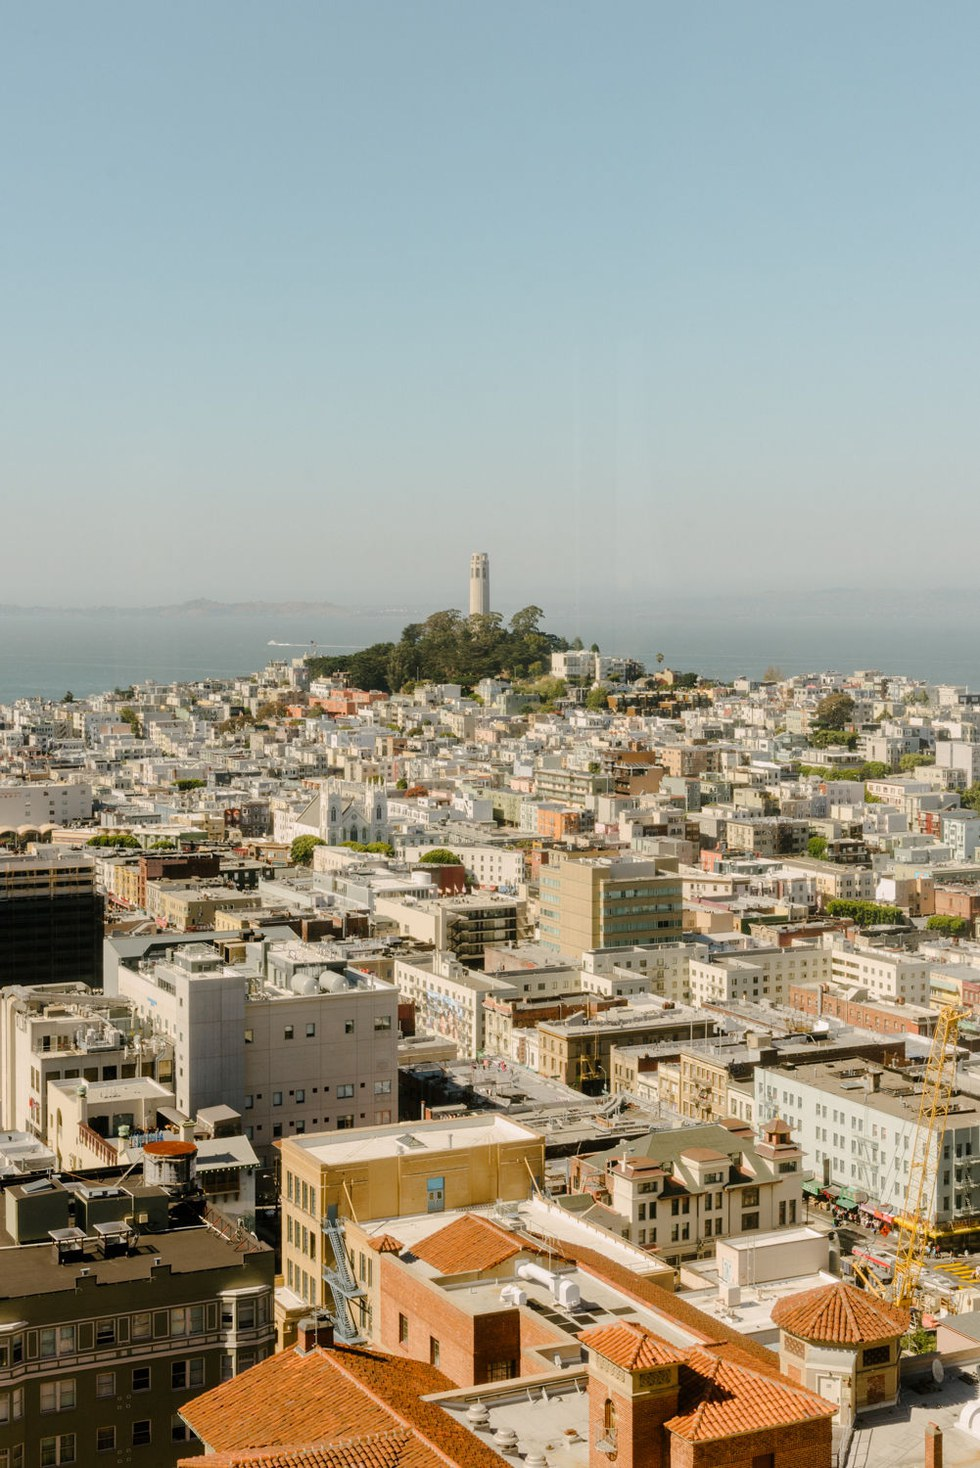 Coit Tower rises from the top of Telegraph Hill